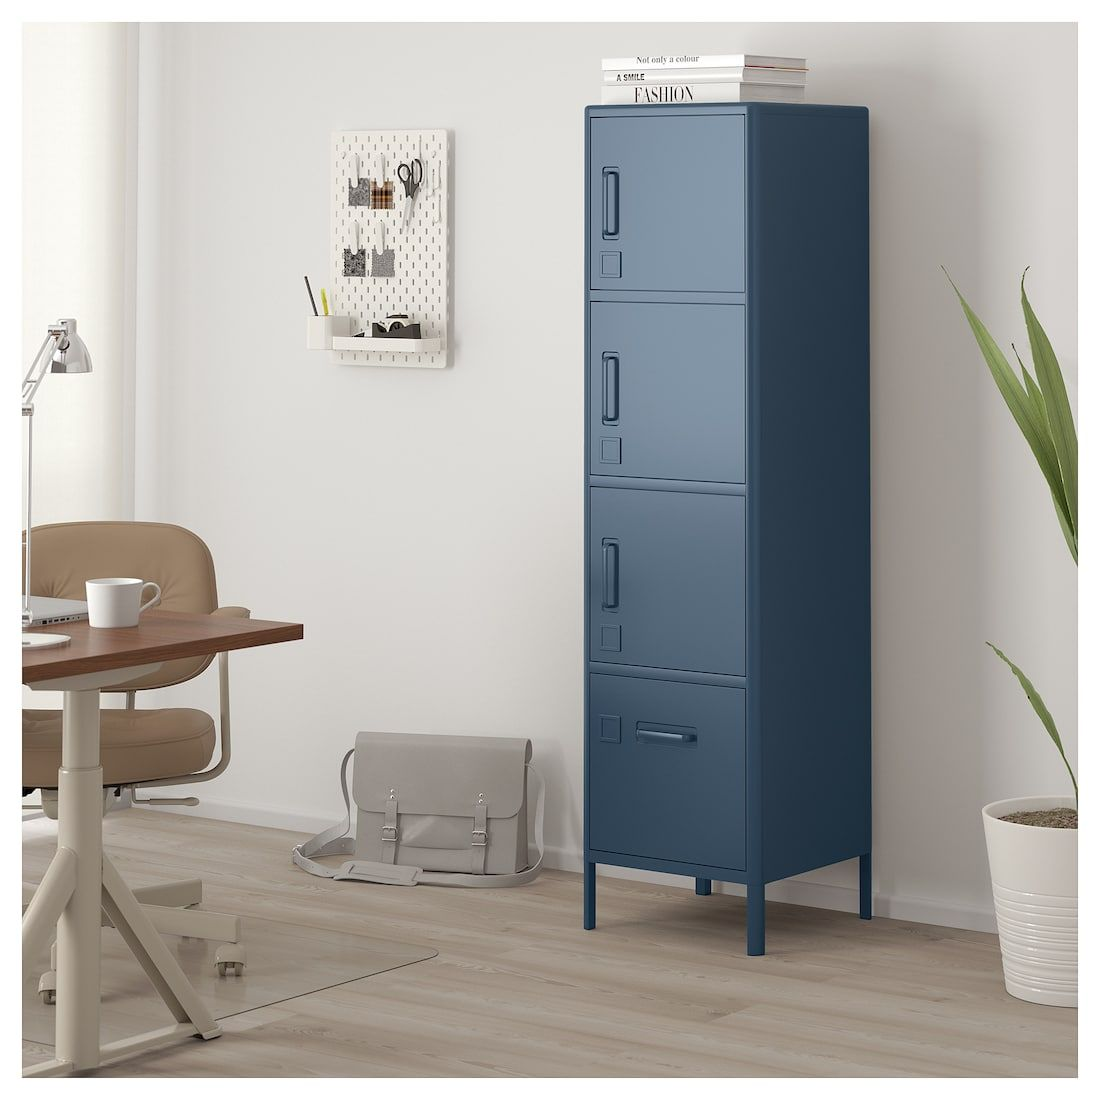 """IDÅSEN High Cabinet With Drawer And Doors, Blue, 17 3/4x67 3/4"""" - IKEA In 2021   Ikea Lockers, Living Room Office, Living Room Storage"""